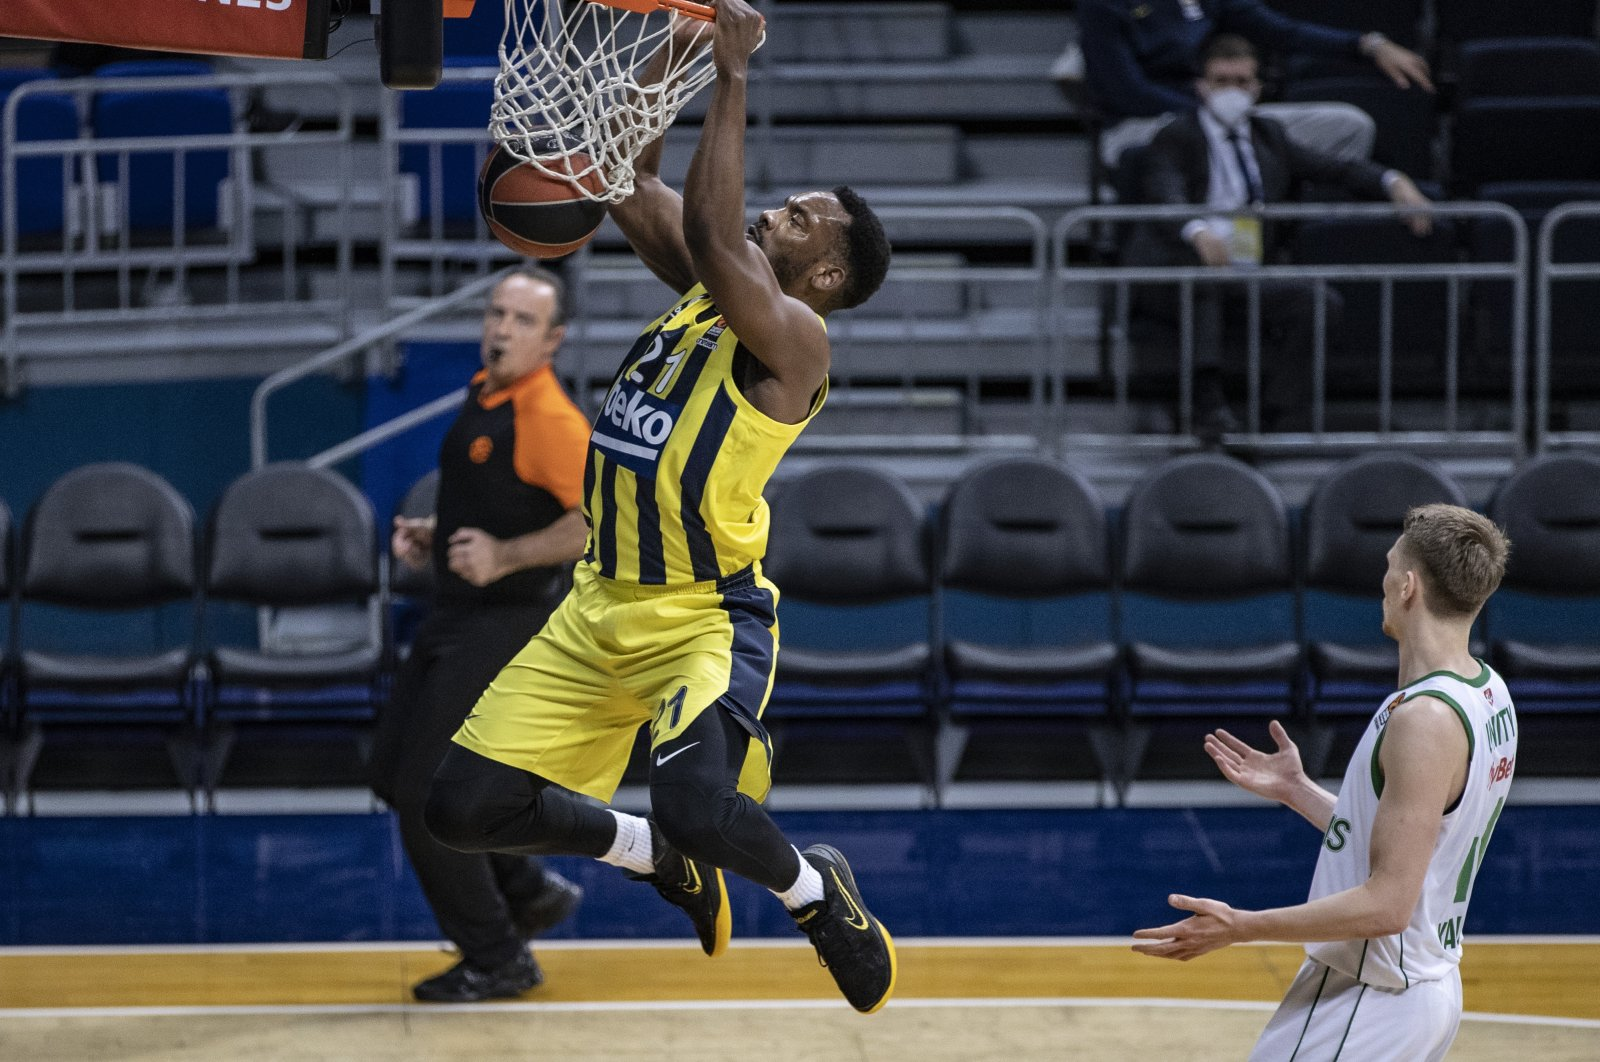 Fenerbahçe's Dyshawn Pierre (L) in action against Joffrey Lauvergne (R) of Zalgiris during a Turkish Airlines Euroleague match at Ülker Sports Complex, Istanbul, Turkey, March 18, 2021. (AA Photo)